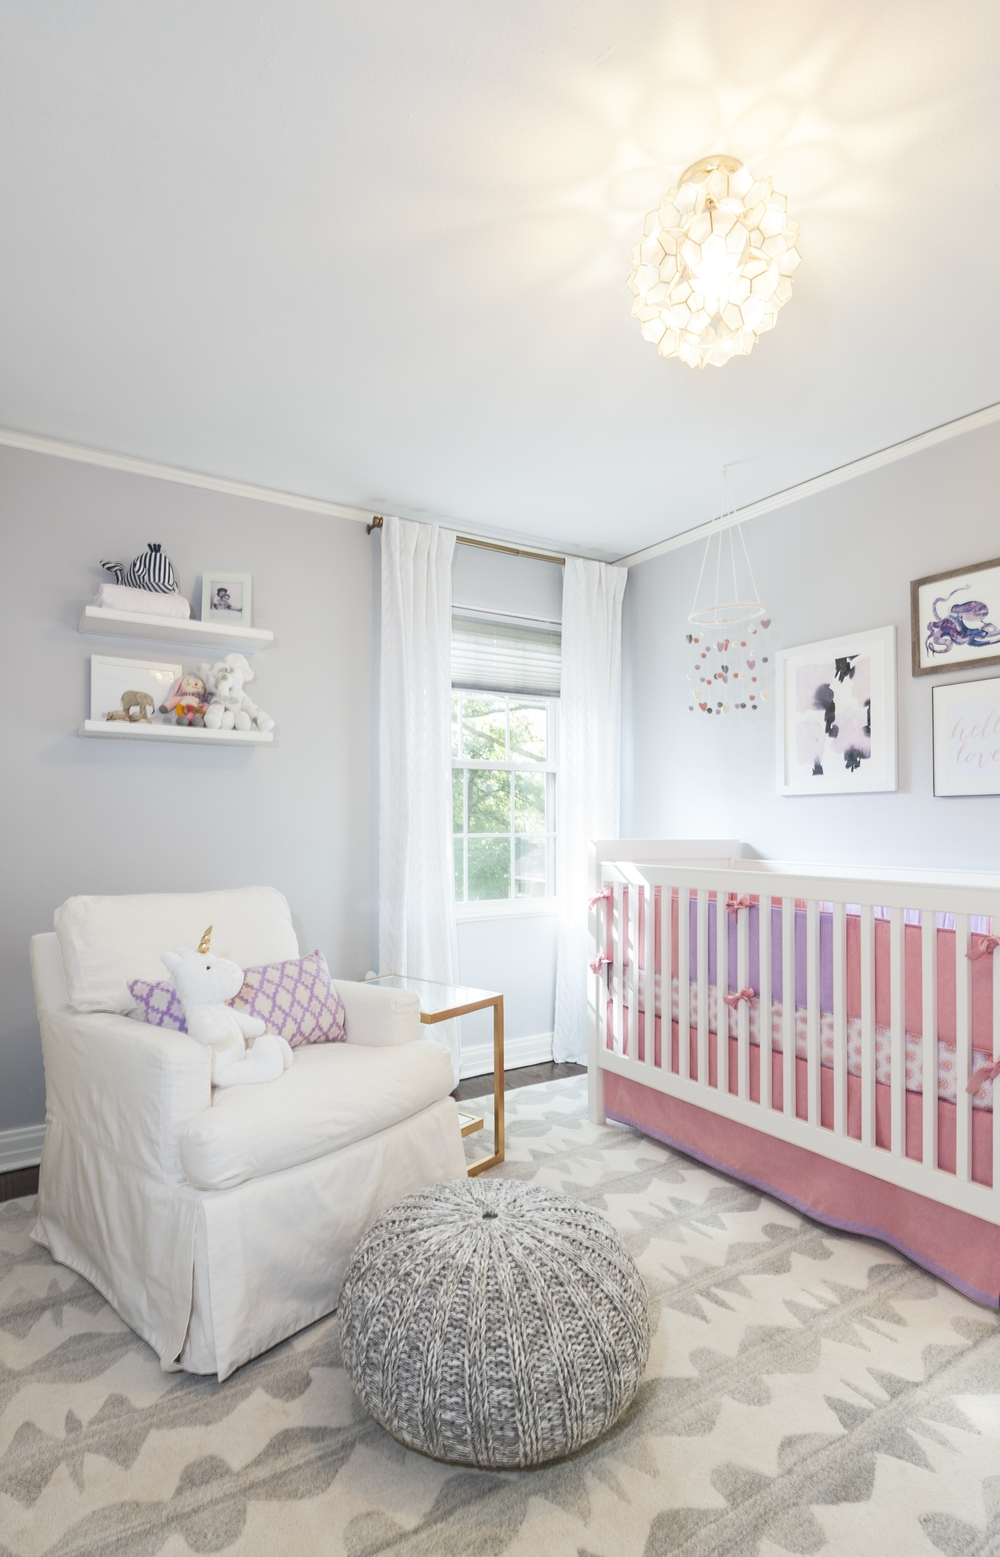 Alexis Pearl Design | Nursery, girl, pink and grey, modern, Crate and Barrel Hathaway glider, Land of Nod pouf, floating shelves